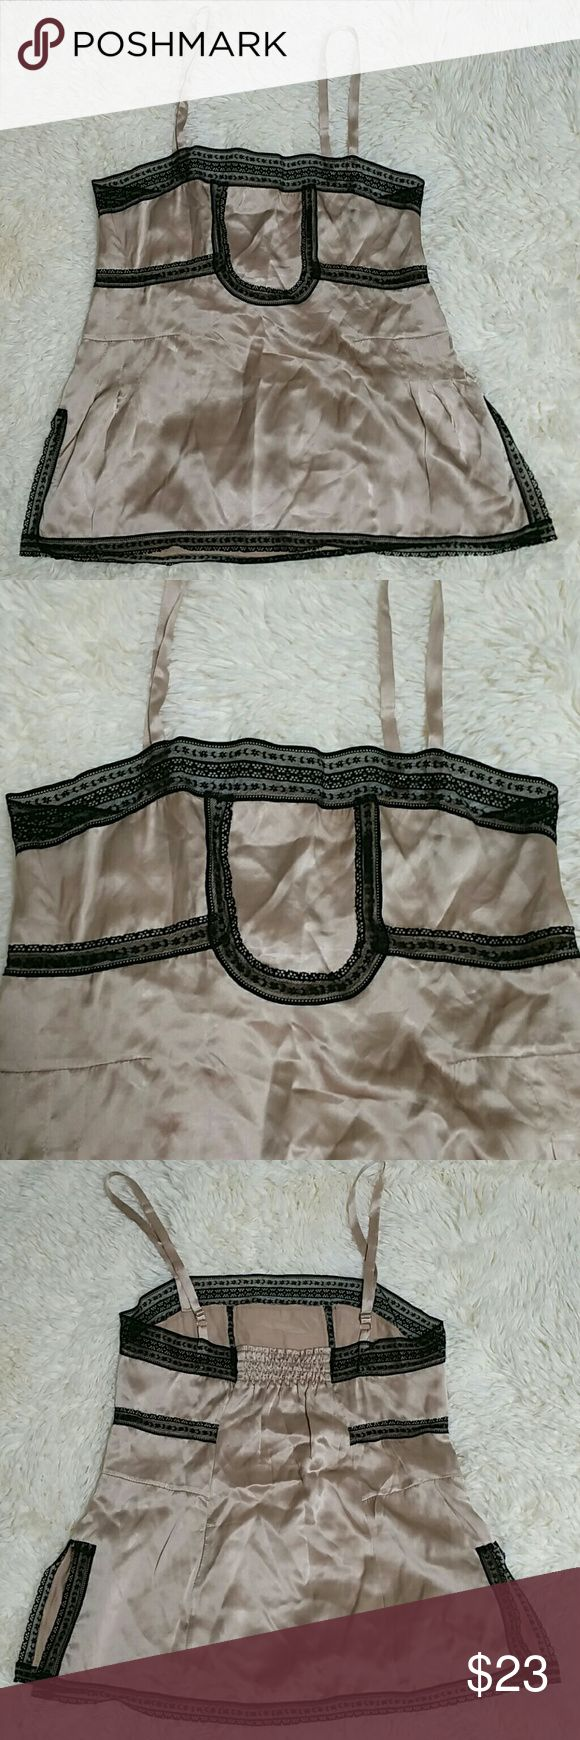 Tracy McWilliams lace & silk cami top Tracy McWilliams lace & silk cami top. Size M. Beautiful nude tone silk cami top with black lace detailing. Smocked back and adjustable straps. Side slits. 100% silk. Gently worn and in perfect condition! Tracy McWilliams Tops Camisoles